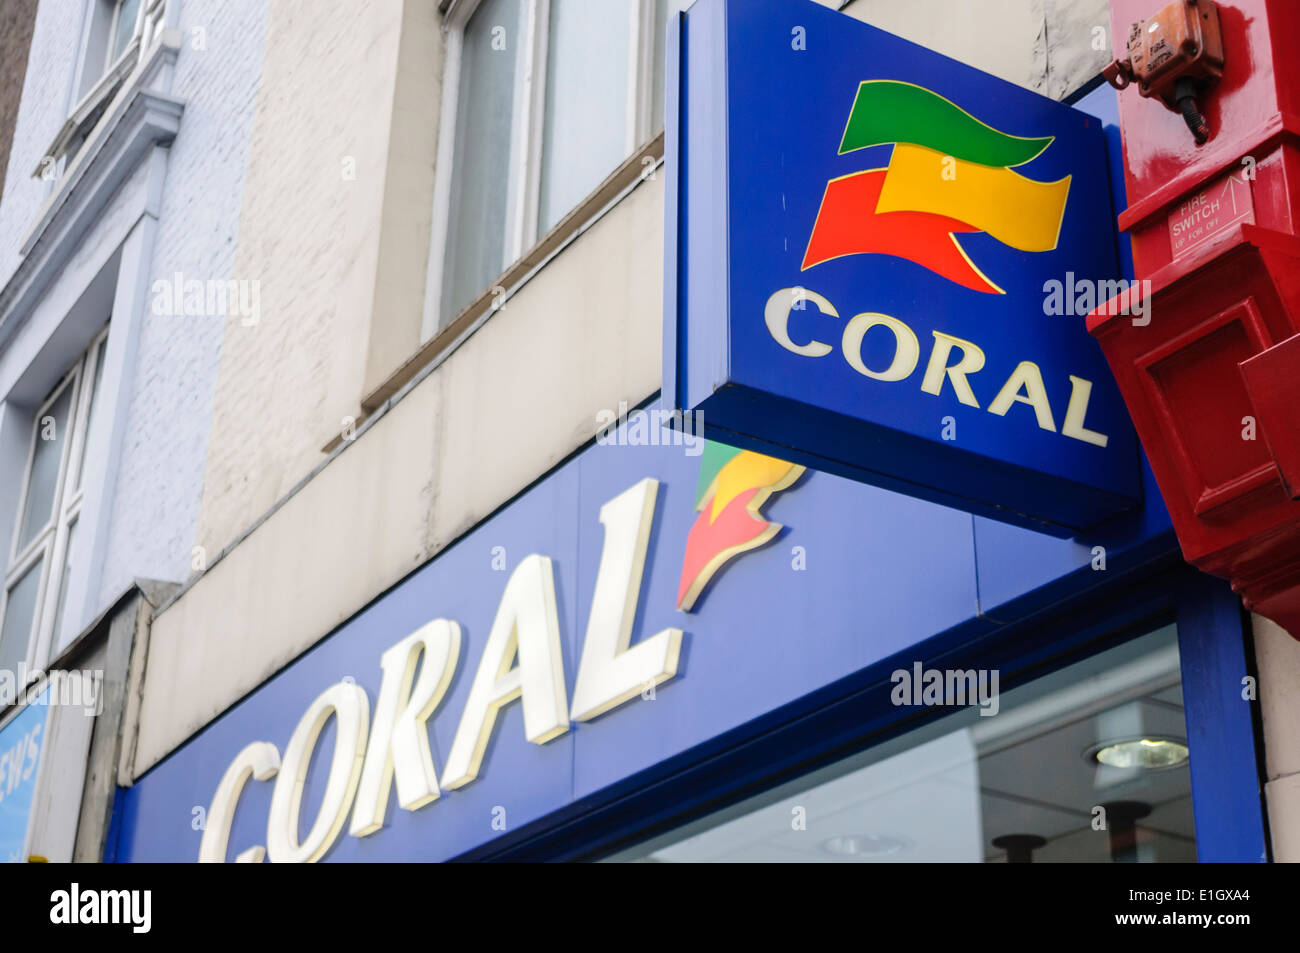 Coral bookmakers - Stock Image